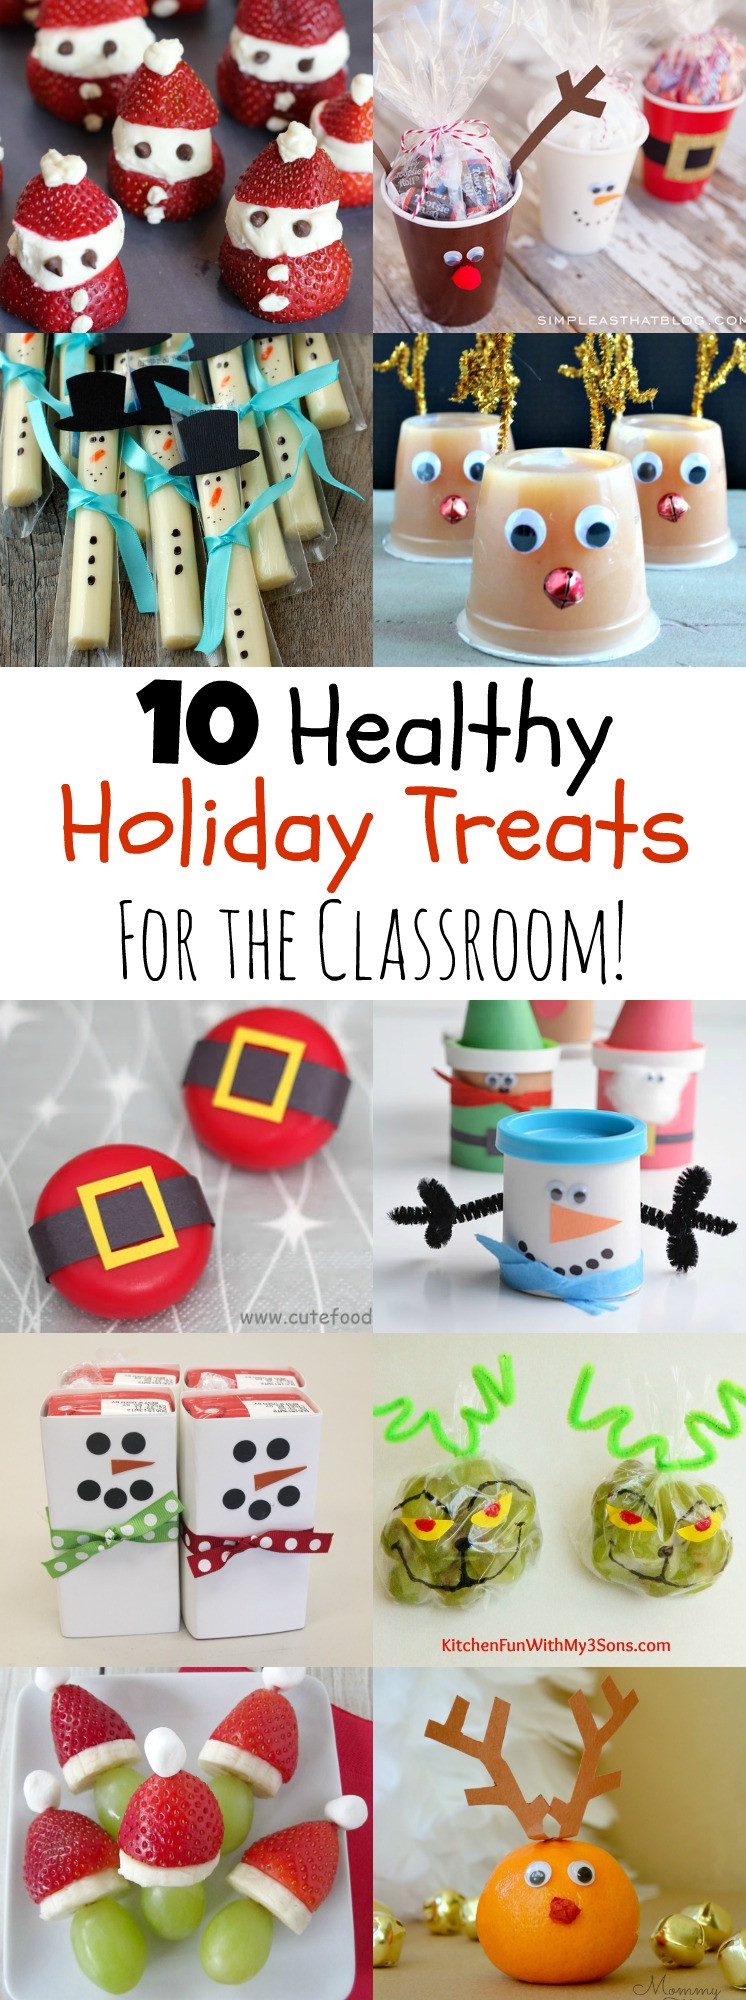 Christmas Class Party Ideas  10 Healthy Holiday Treats for the Classroom MOMables